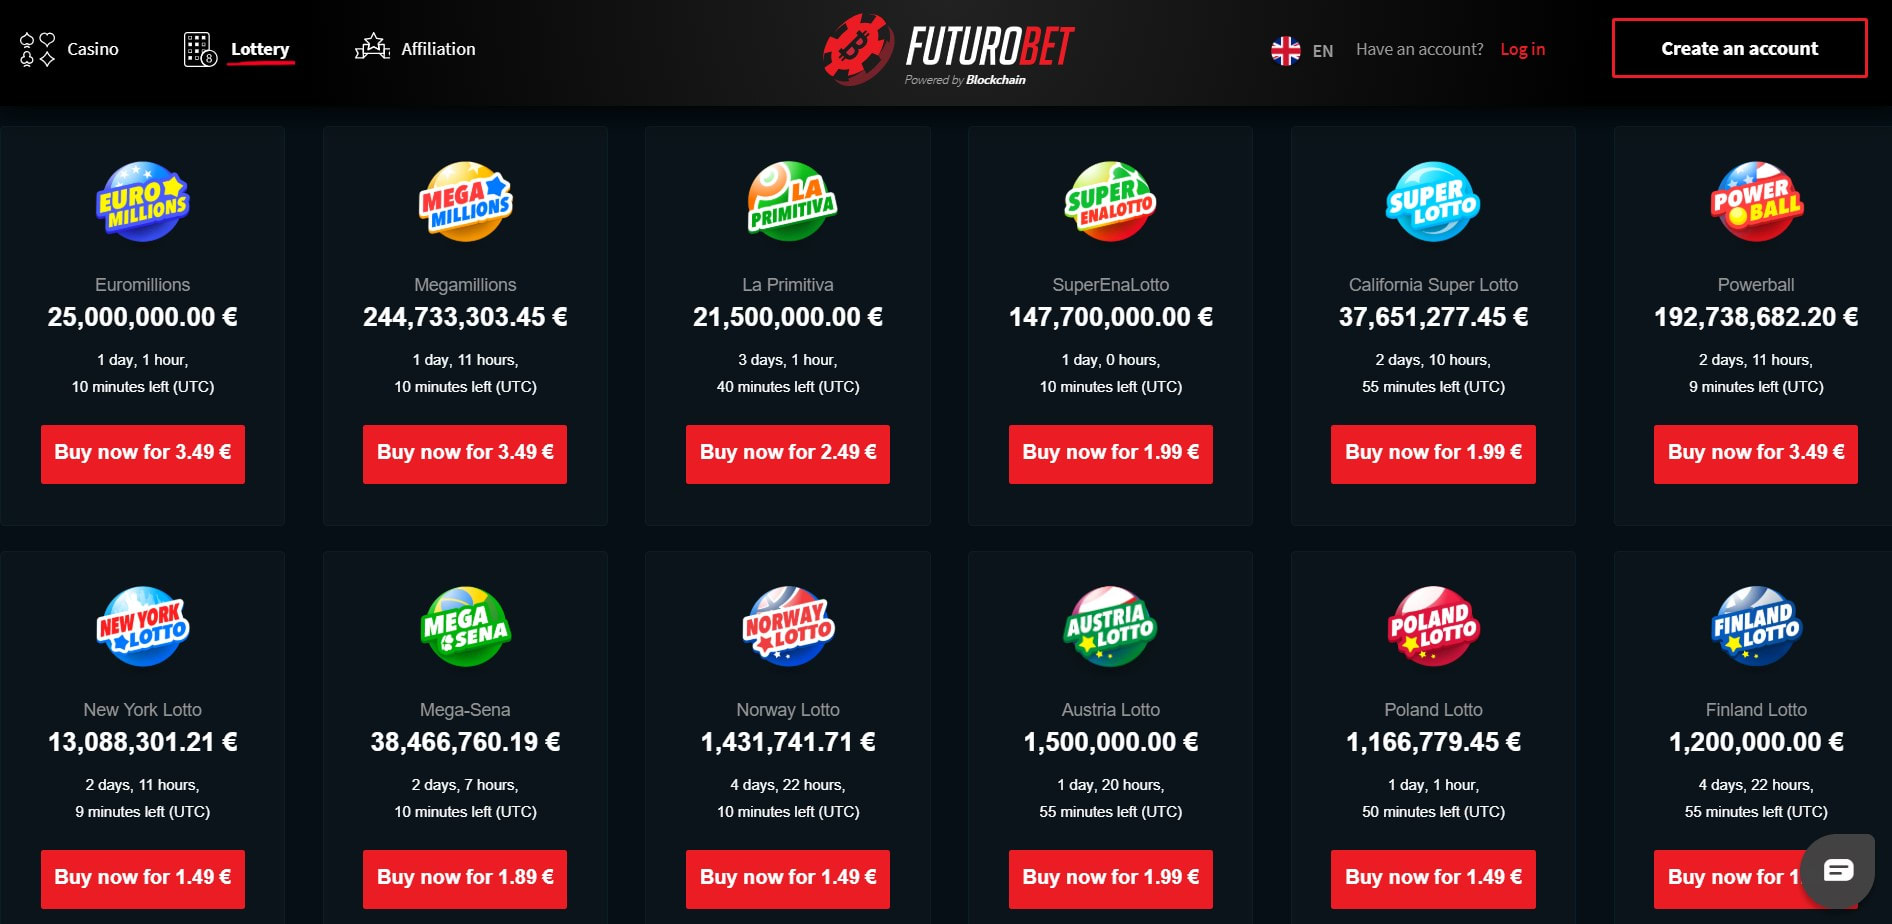 FuturoBet discuss its 'revolutionary approach' to online gaming